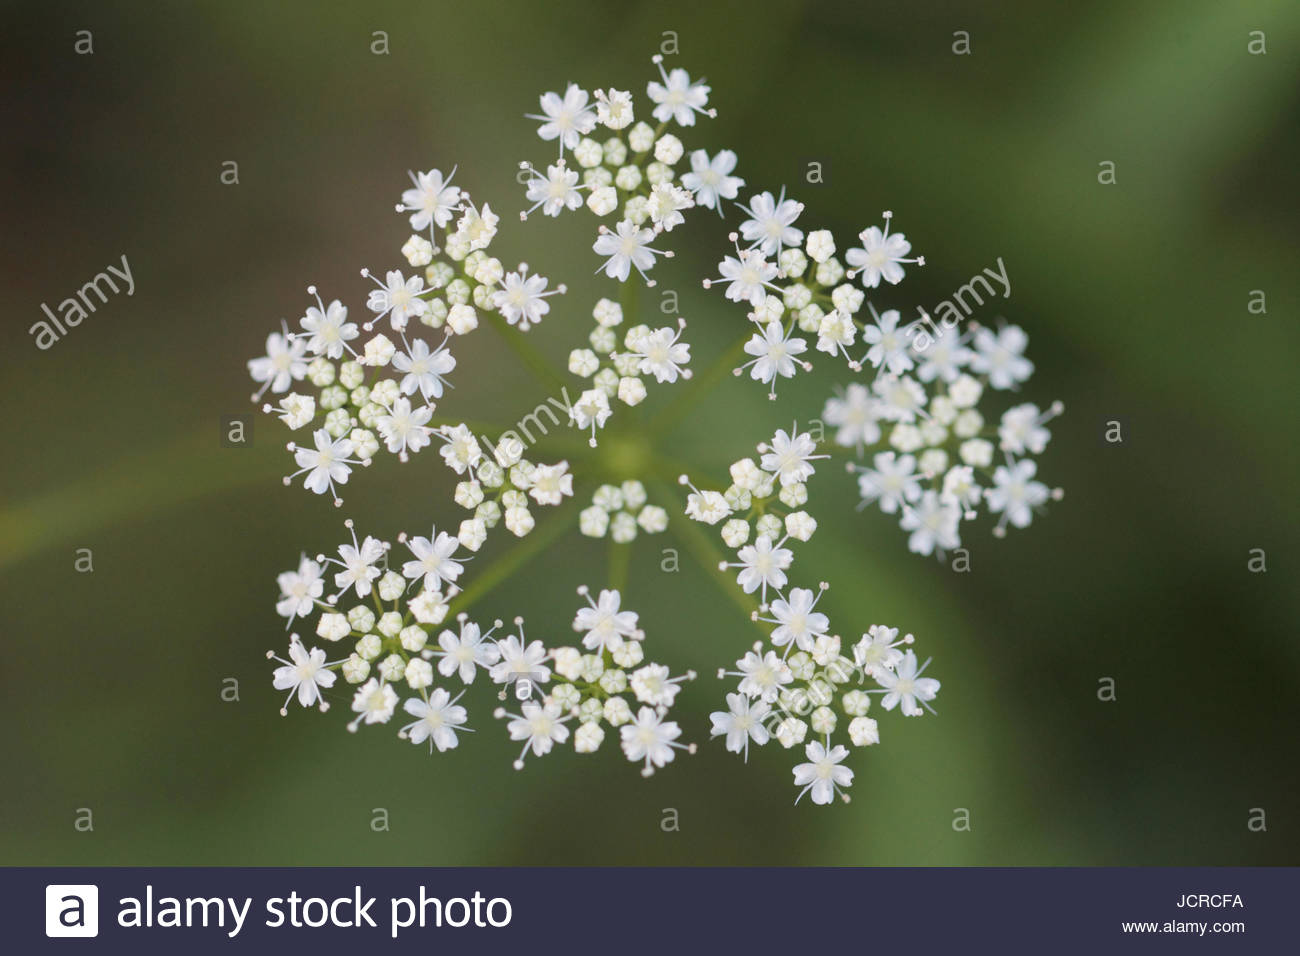 Close up of Apiaceae or Umbelliferae flowers, commonly known as the celery, carrot or parsley family. Stock Photo